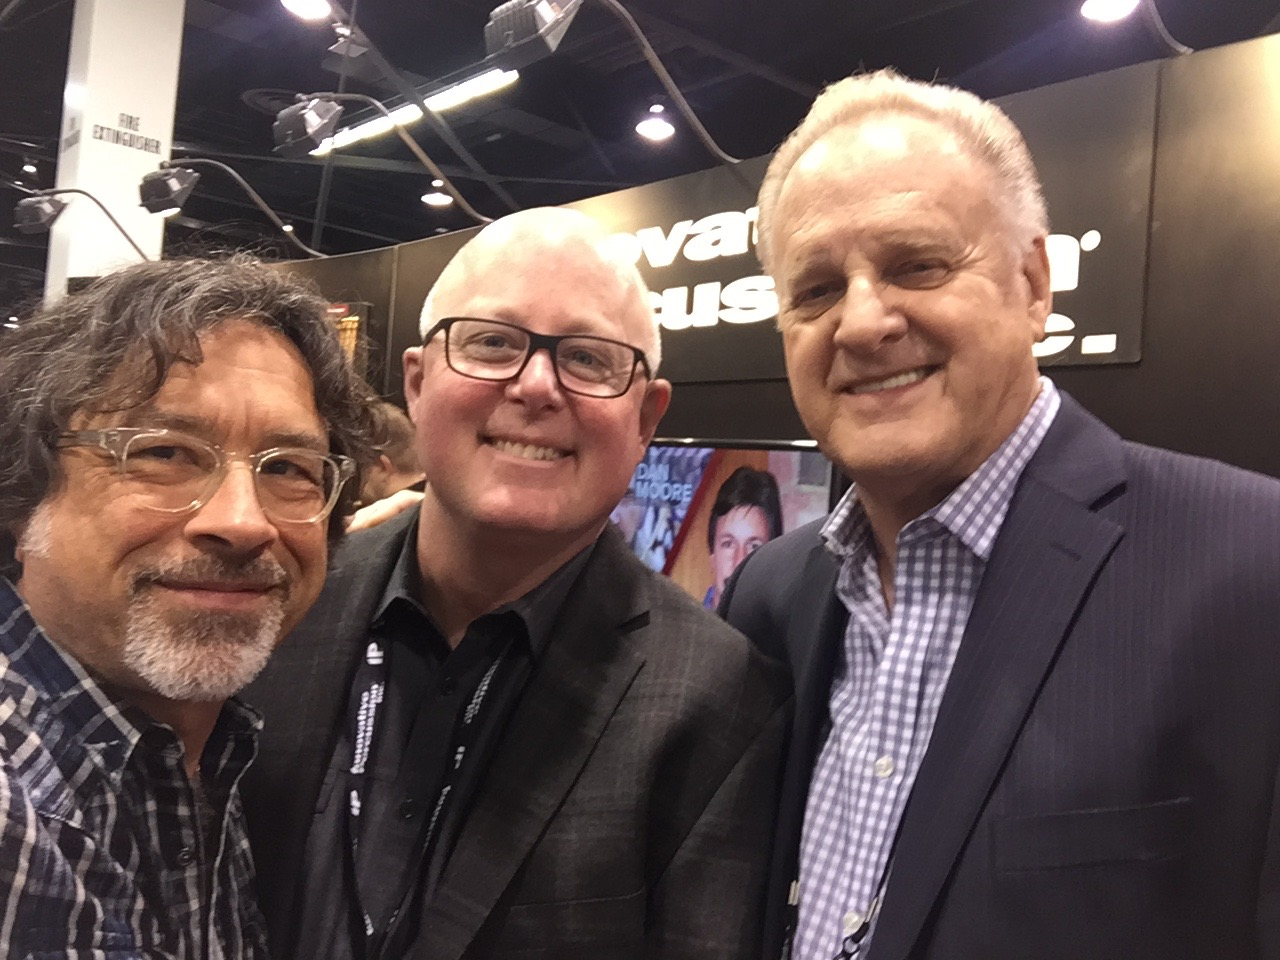 w/George Barrett and Jim Petercsak